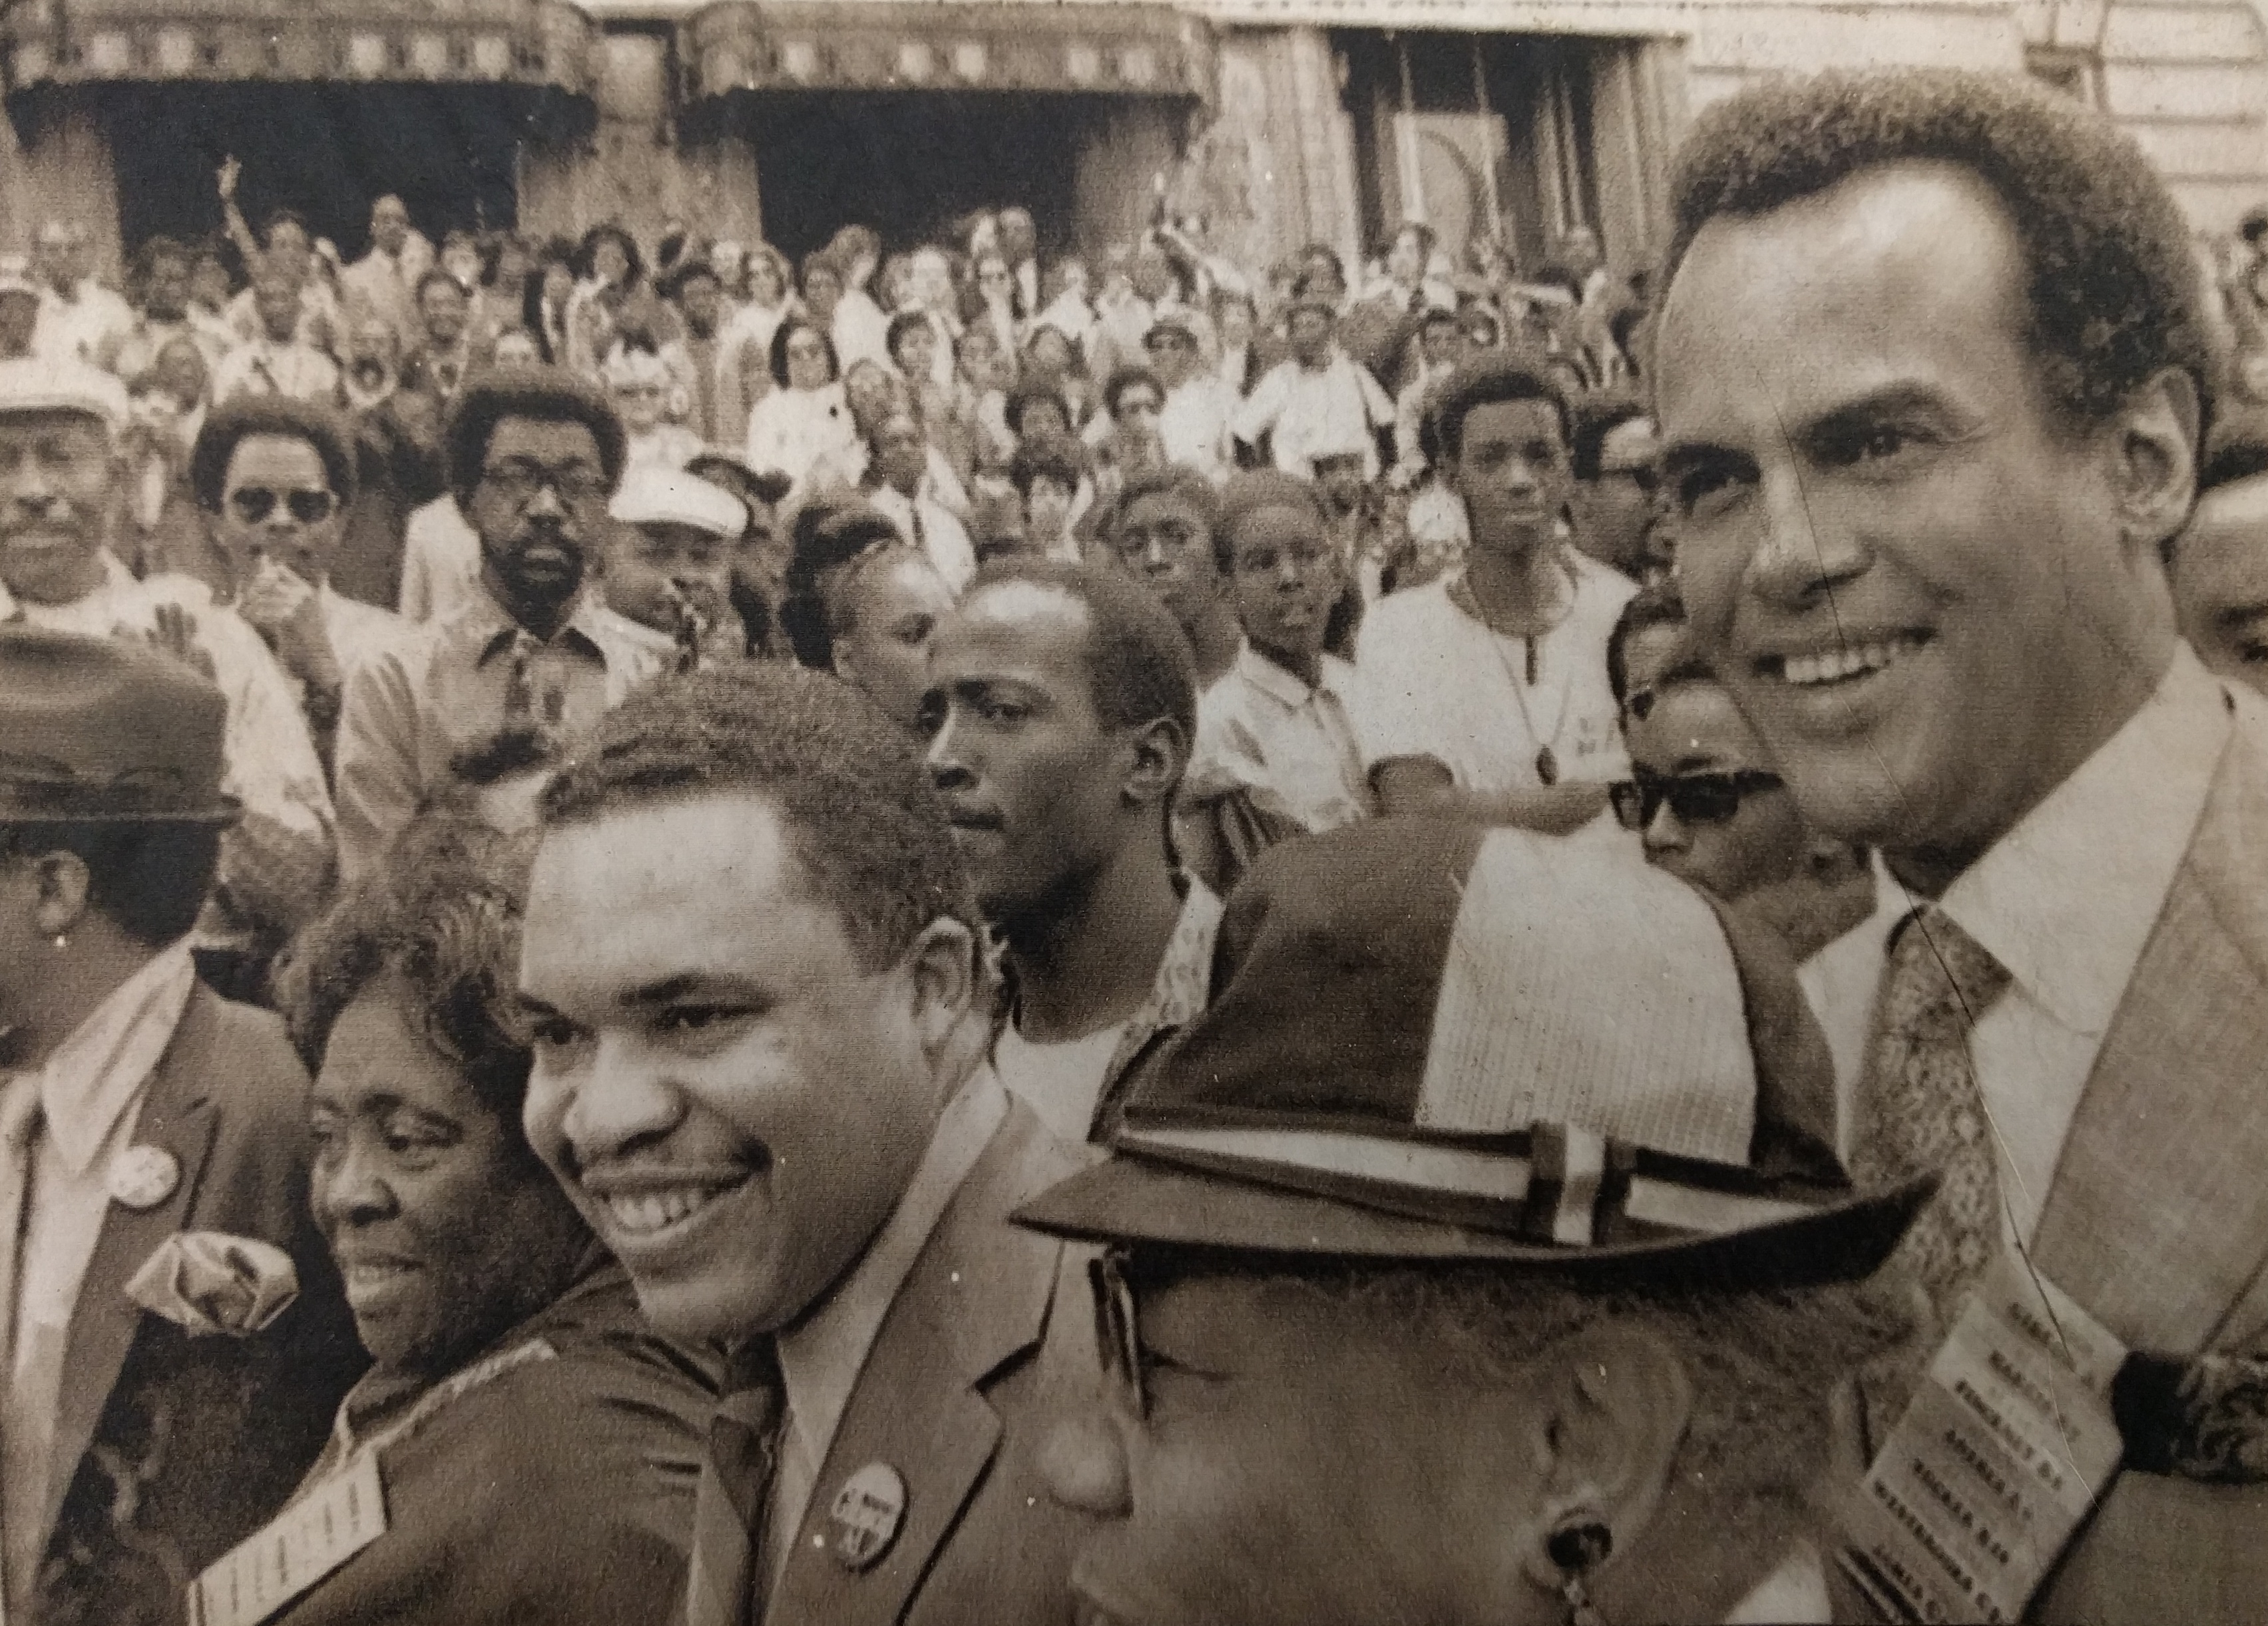 Ken Gibson Campaign March (June 15, 1970)